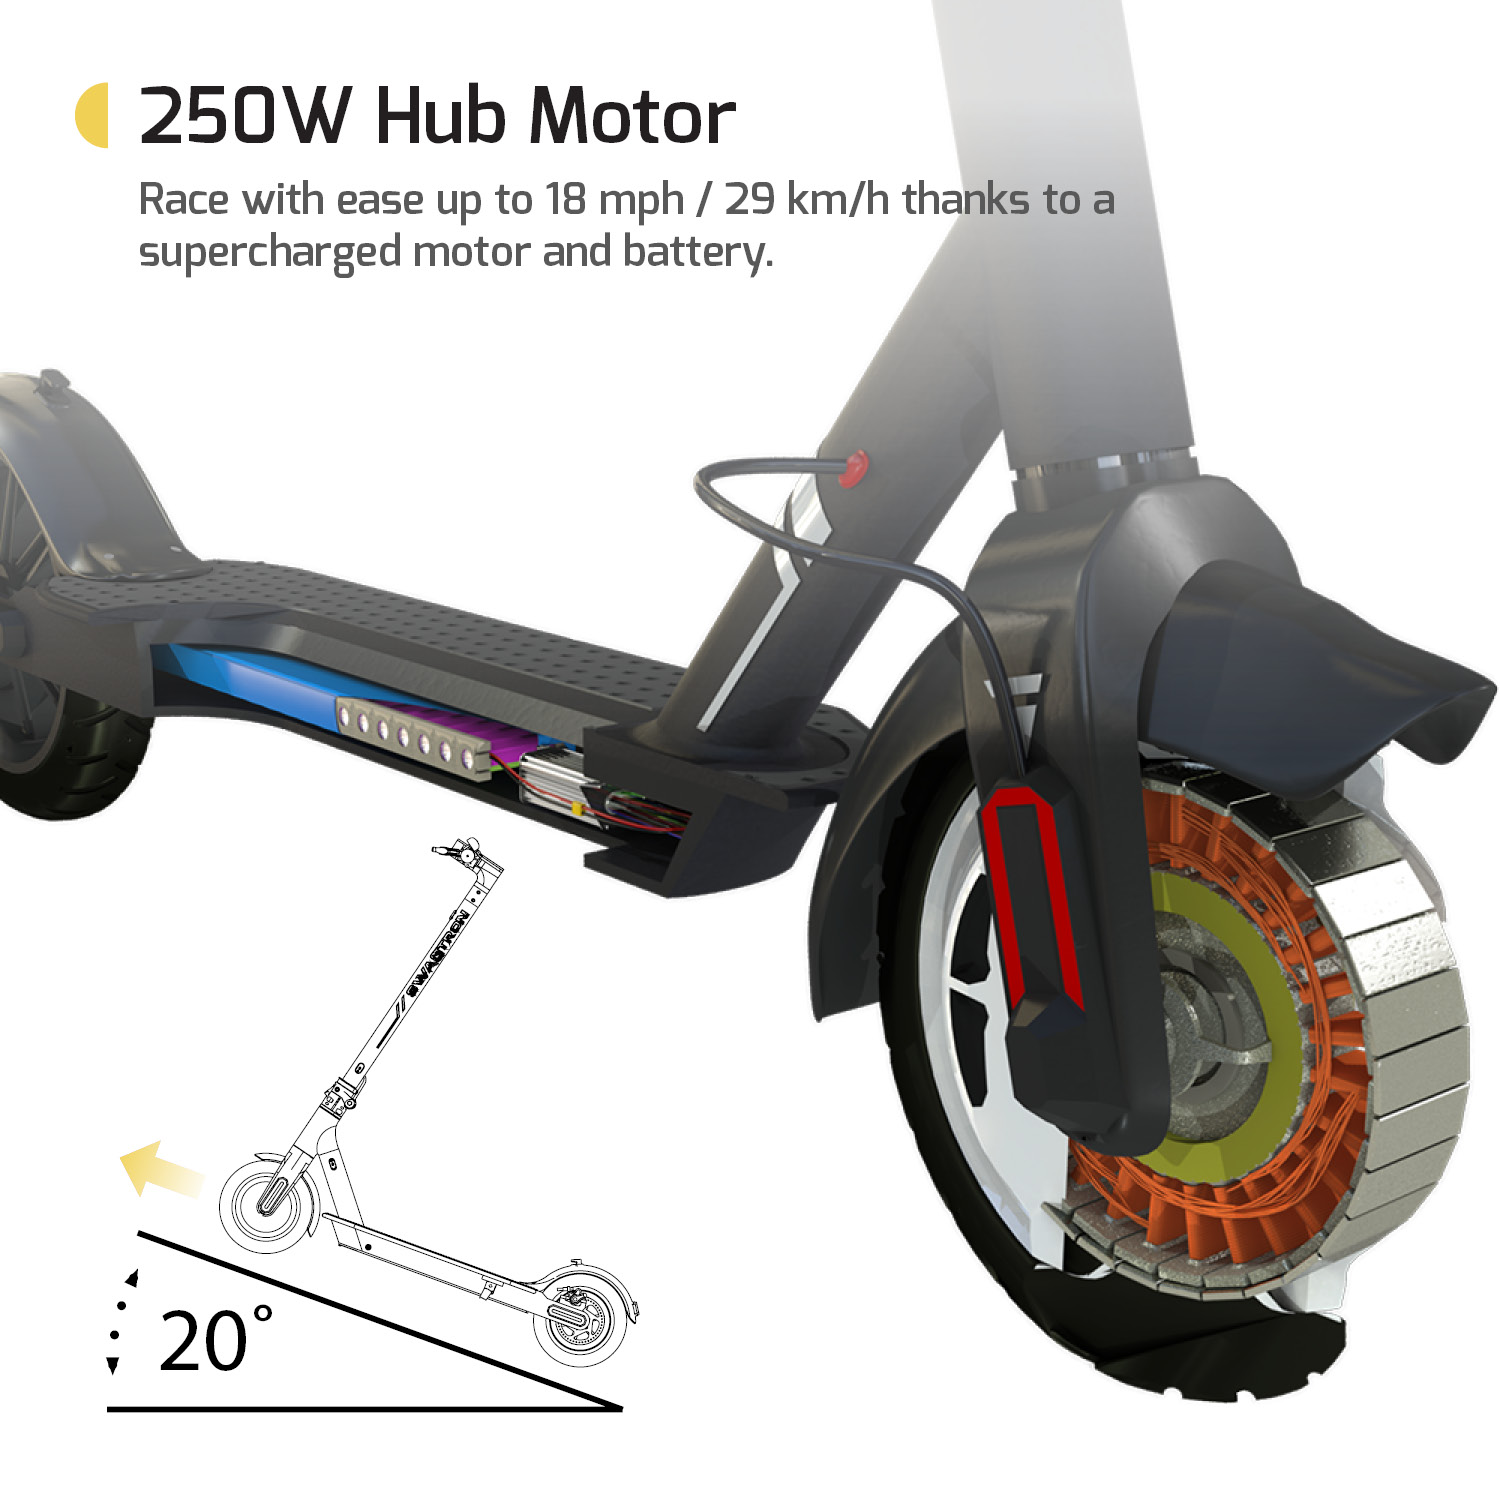 Swagger 5 Elite Electric Smart Scooter, Folding City Commuter